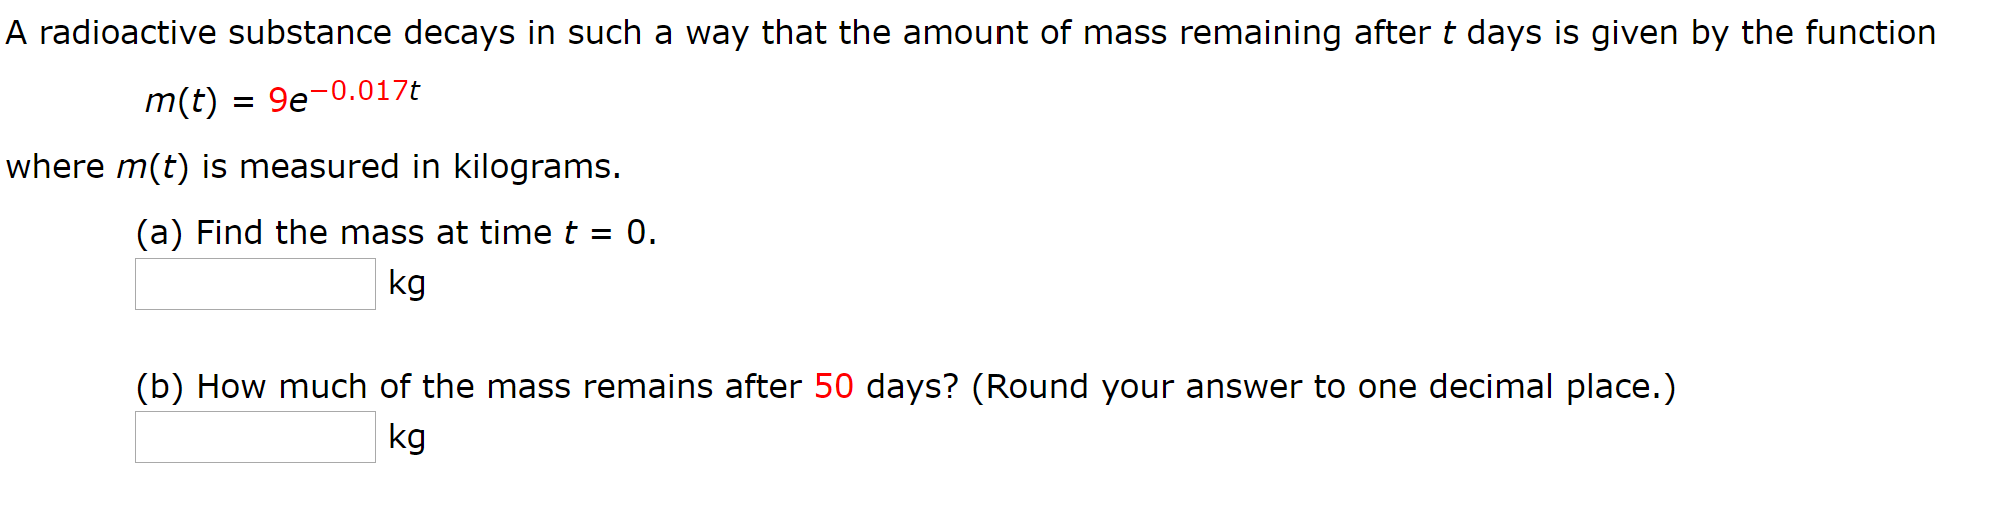 A radioactive substance decays in such a way that the amount of mass remaining after t days is given by the function m(t) = 9e-0.017t where m(t) is measured in kilograms. (a) Find the mass at timet = 0. %3D kg (b) How much of the mass remains after 50 days? (Round your answer to one decimal place.) kg